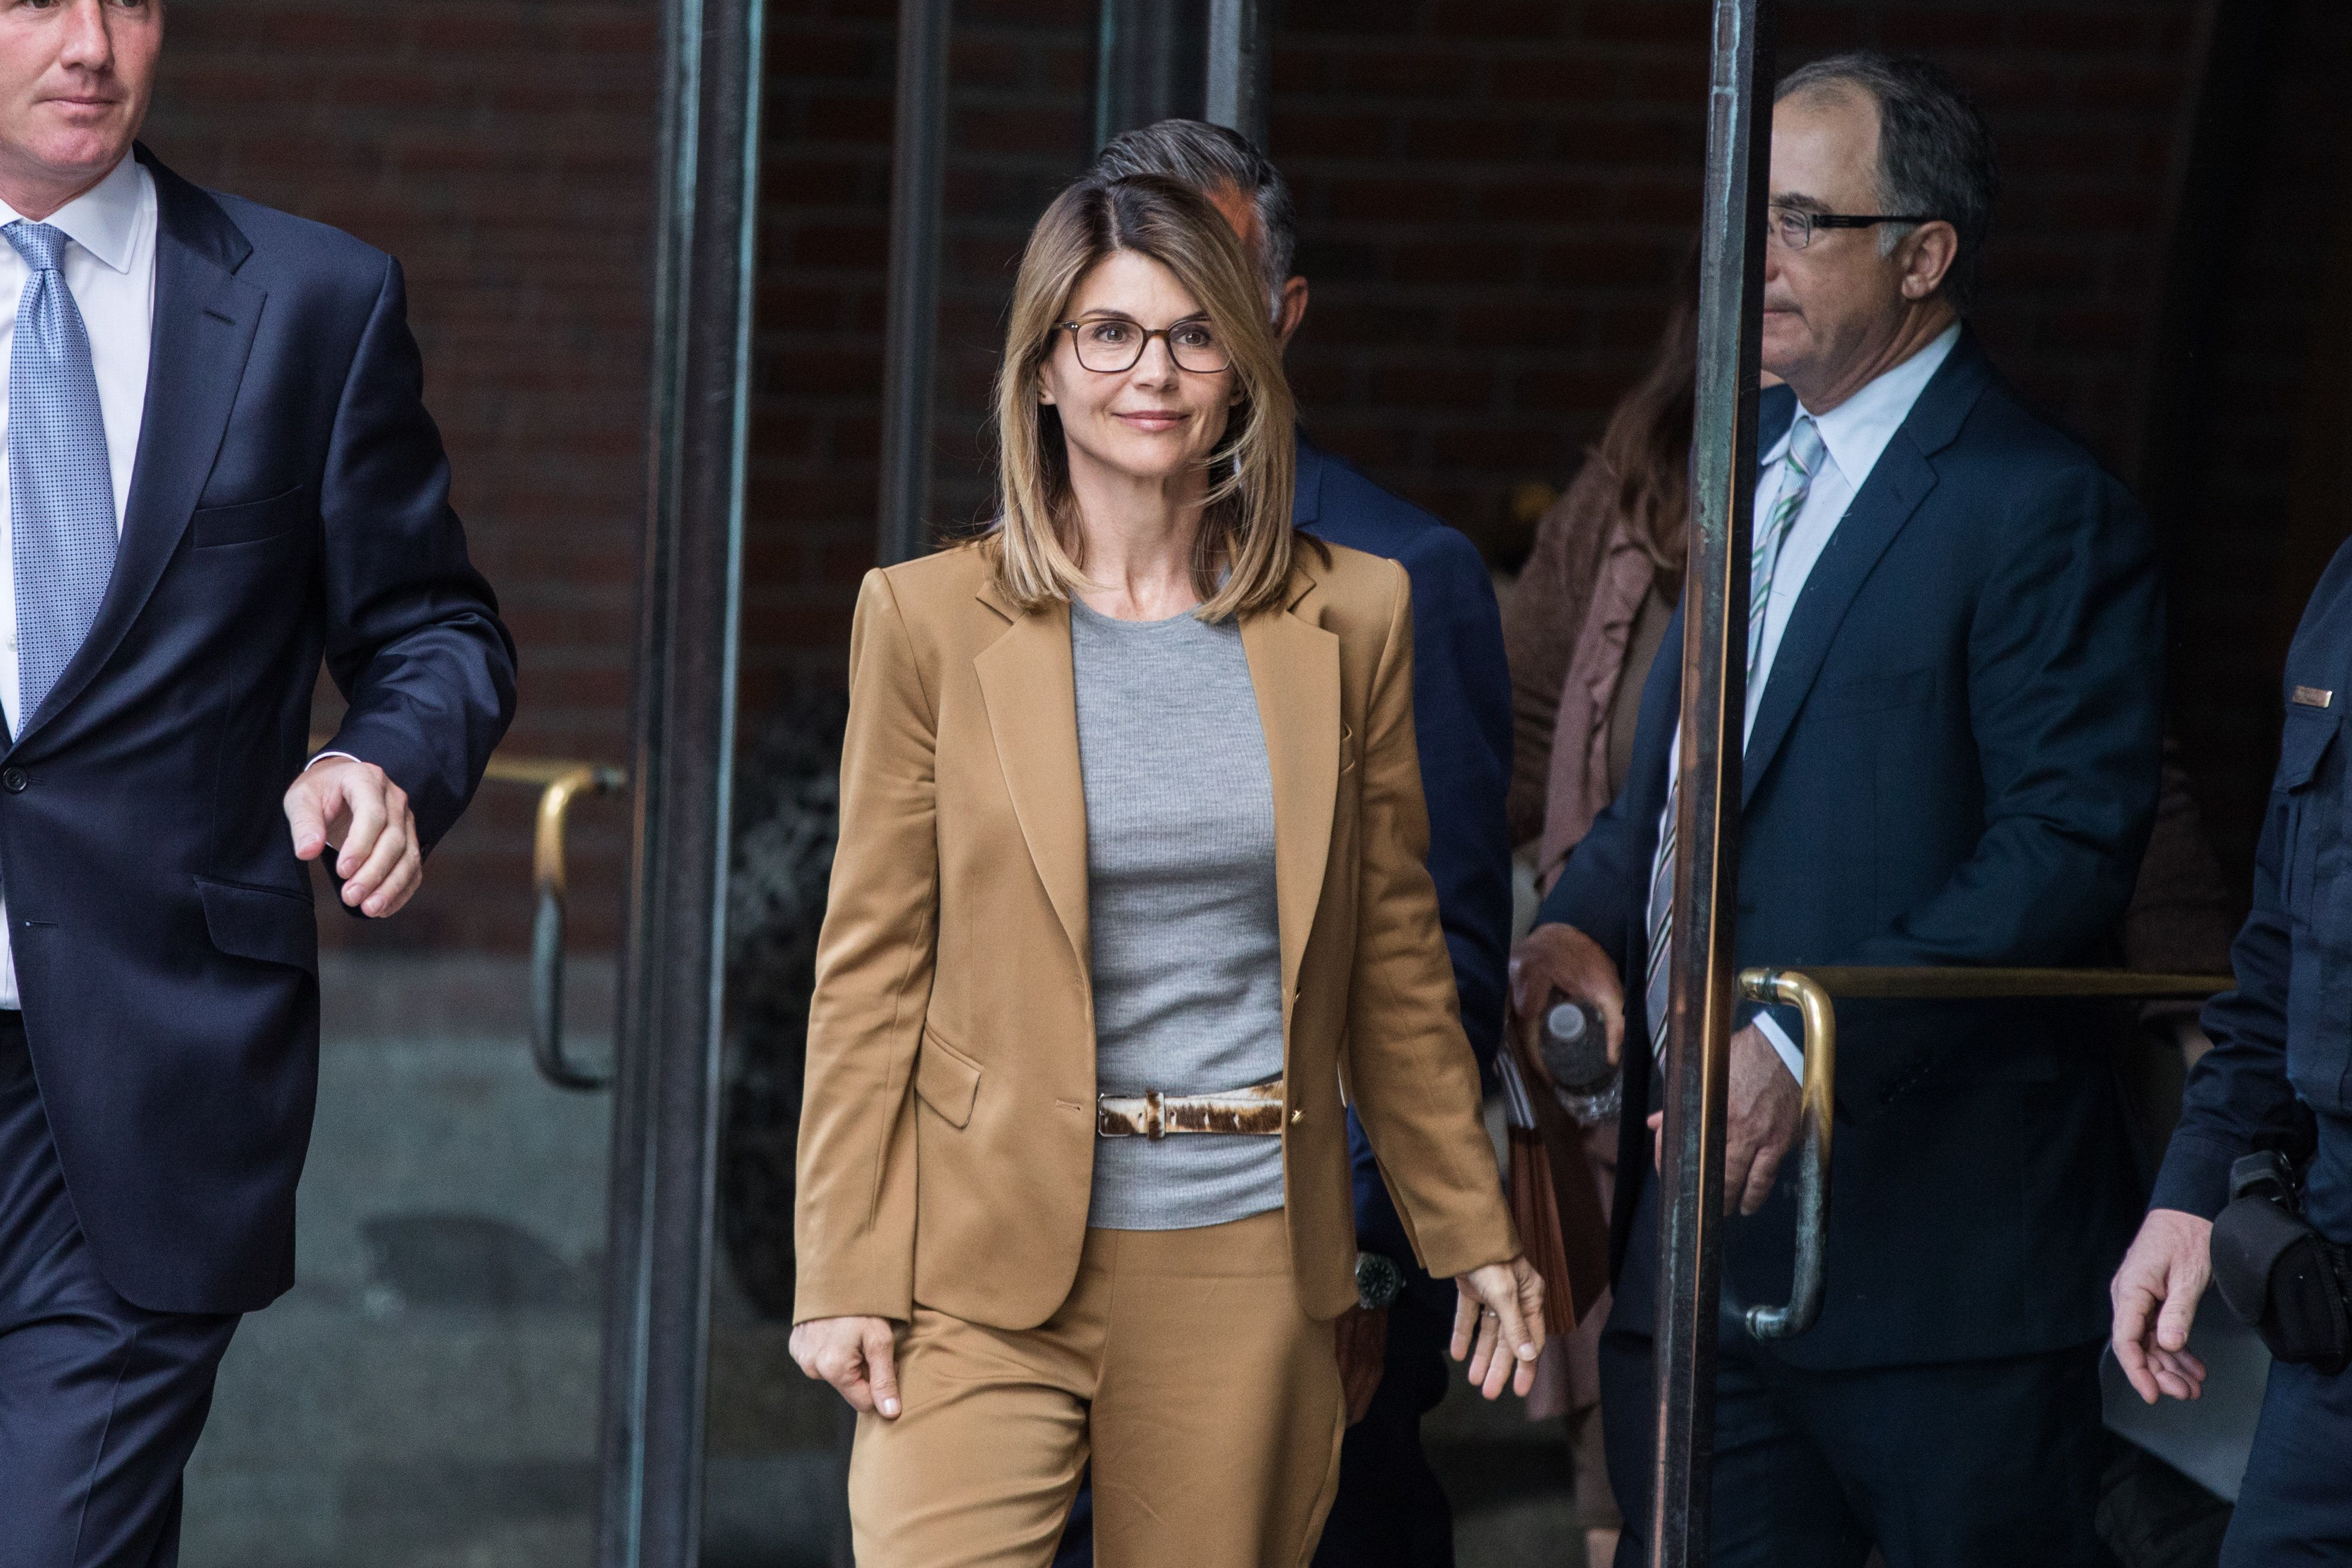 Actress Lori Loughlin exits federal court in Boston on April 3.